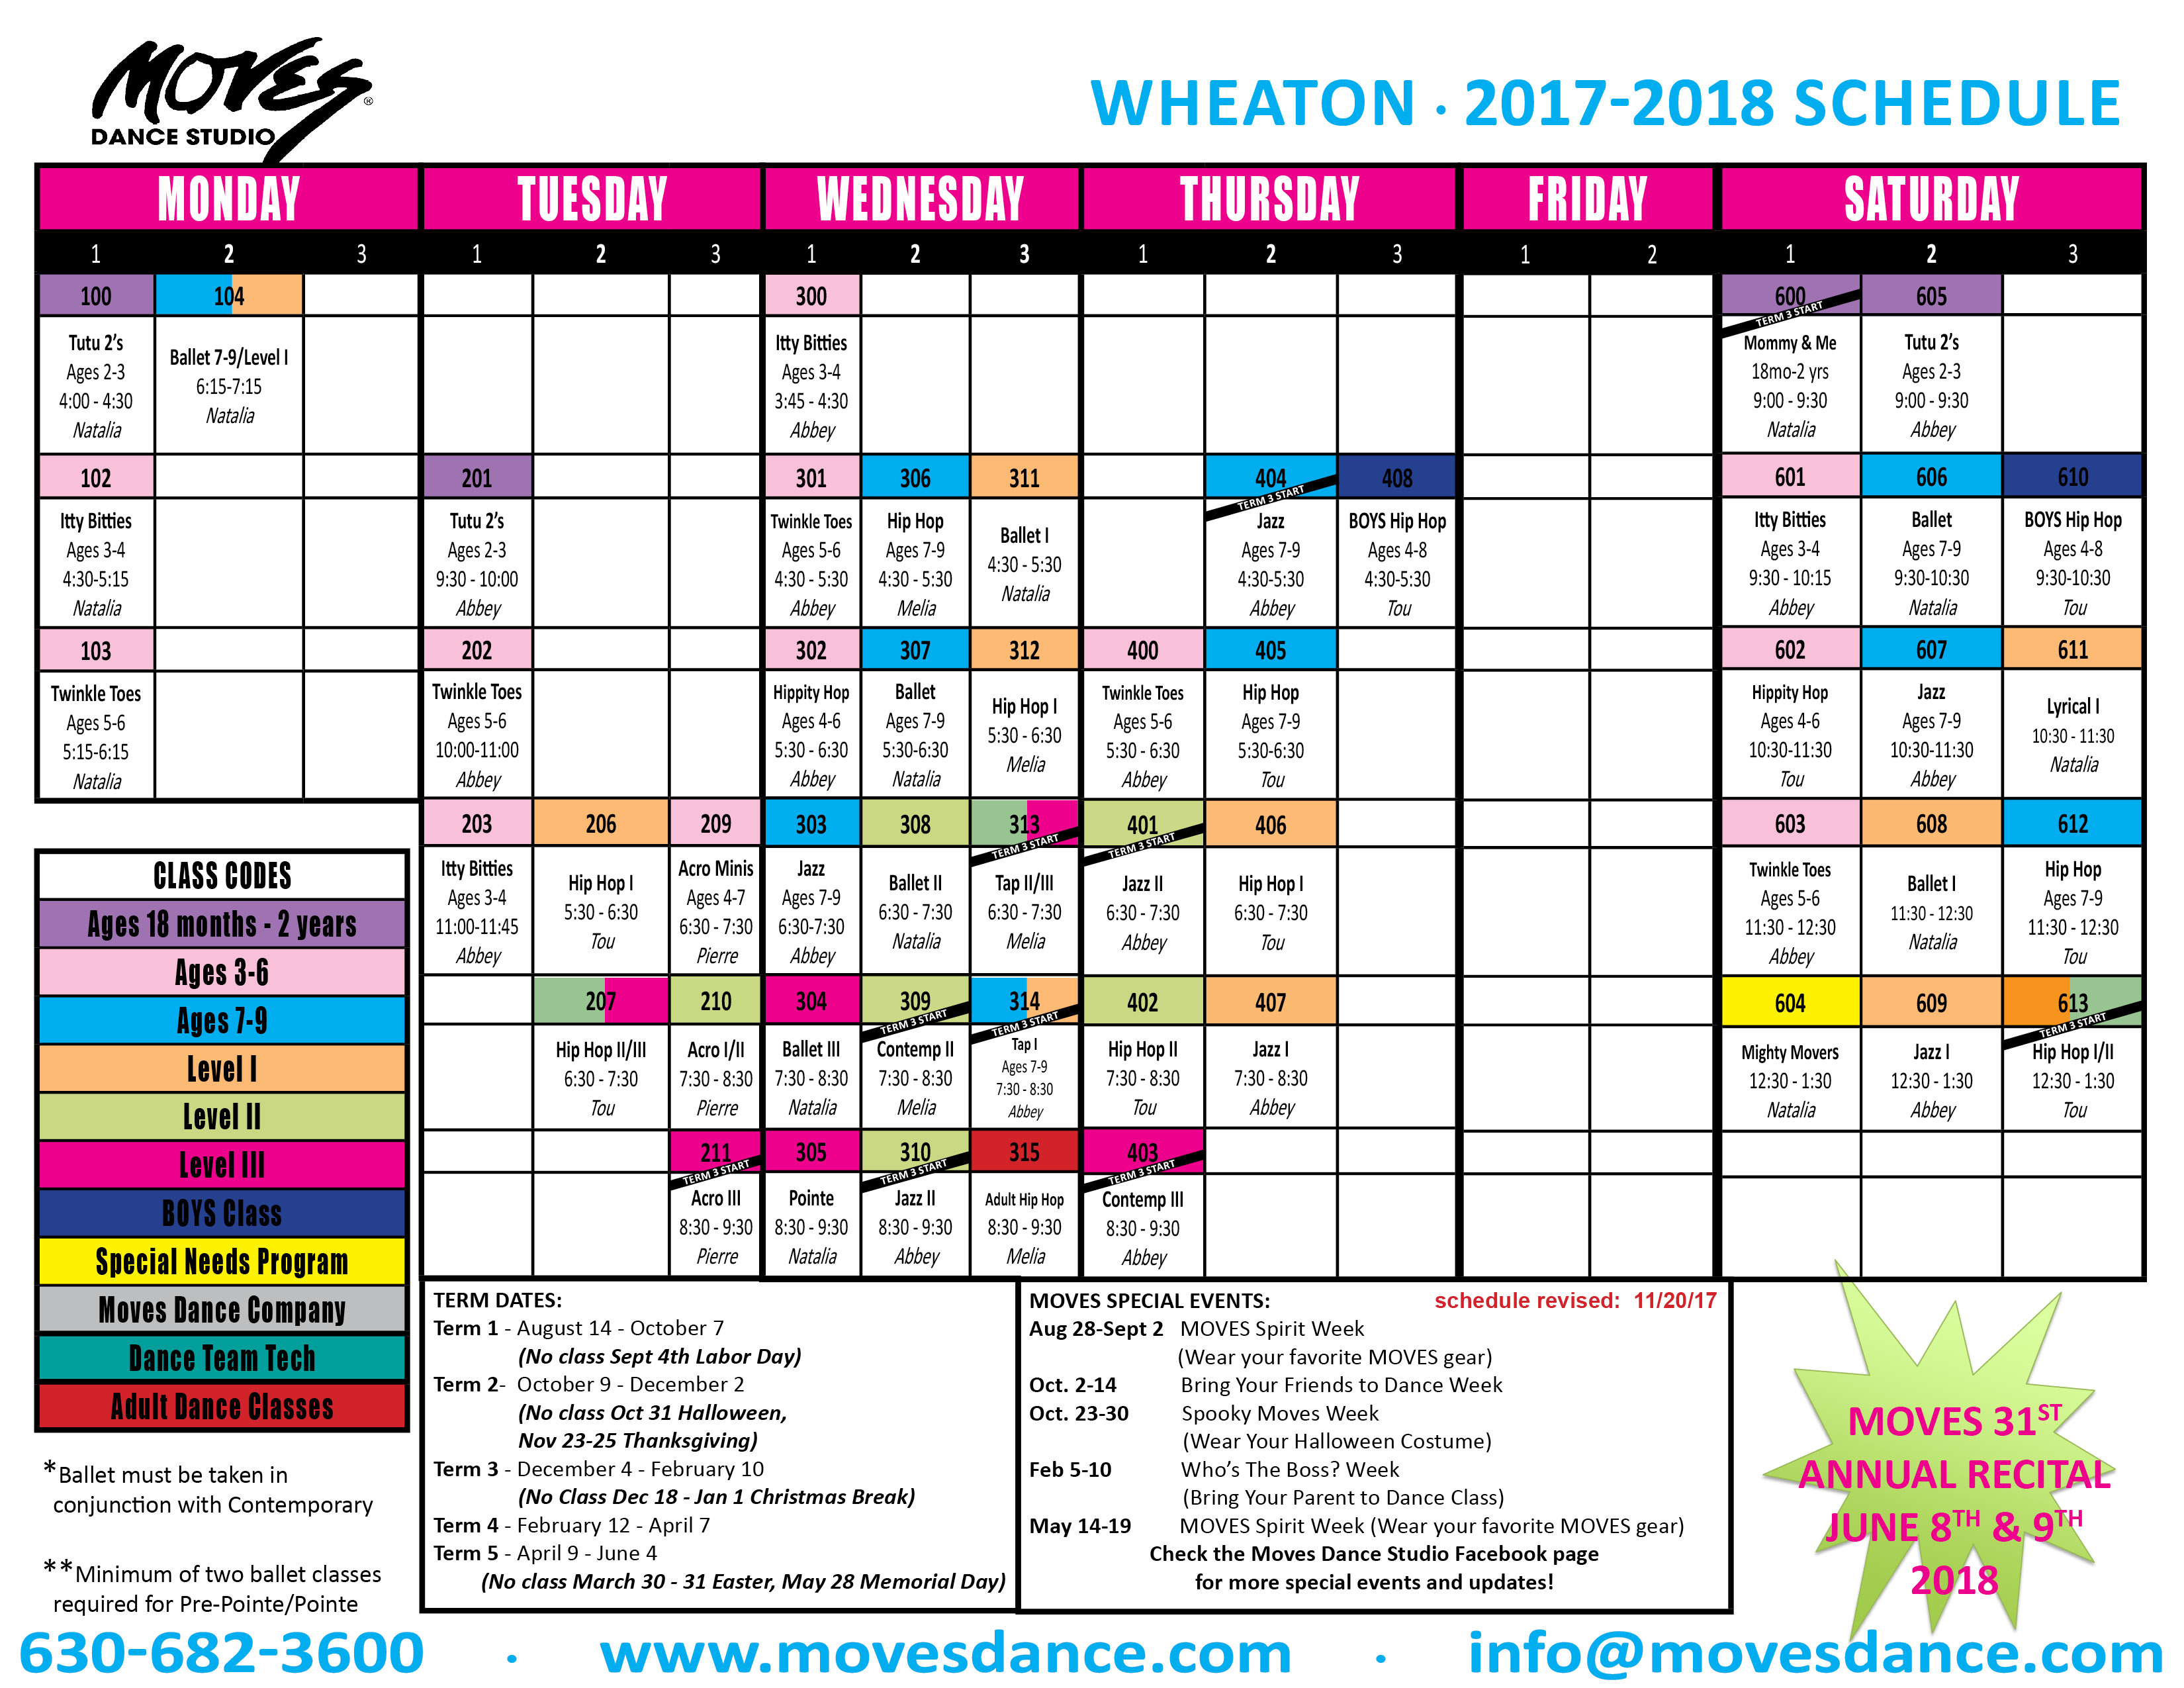 2017 - 2018 WHEATON SCHEDULE - FINAL - revised NOVEMBER 20